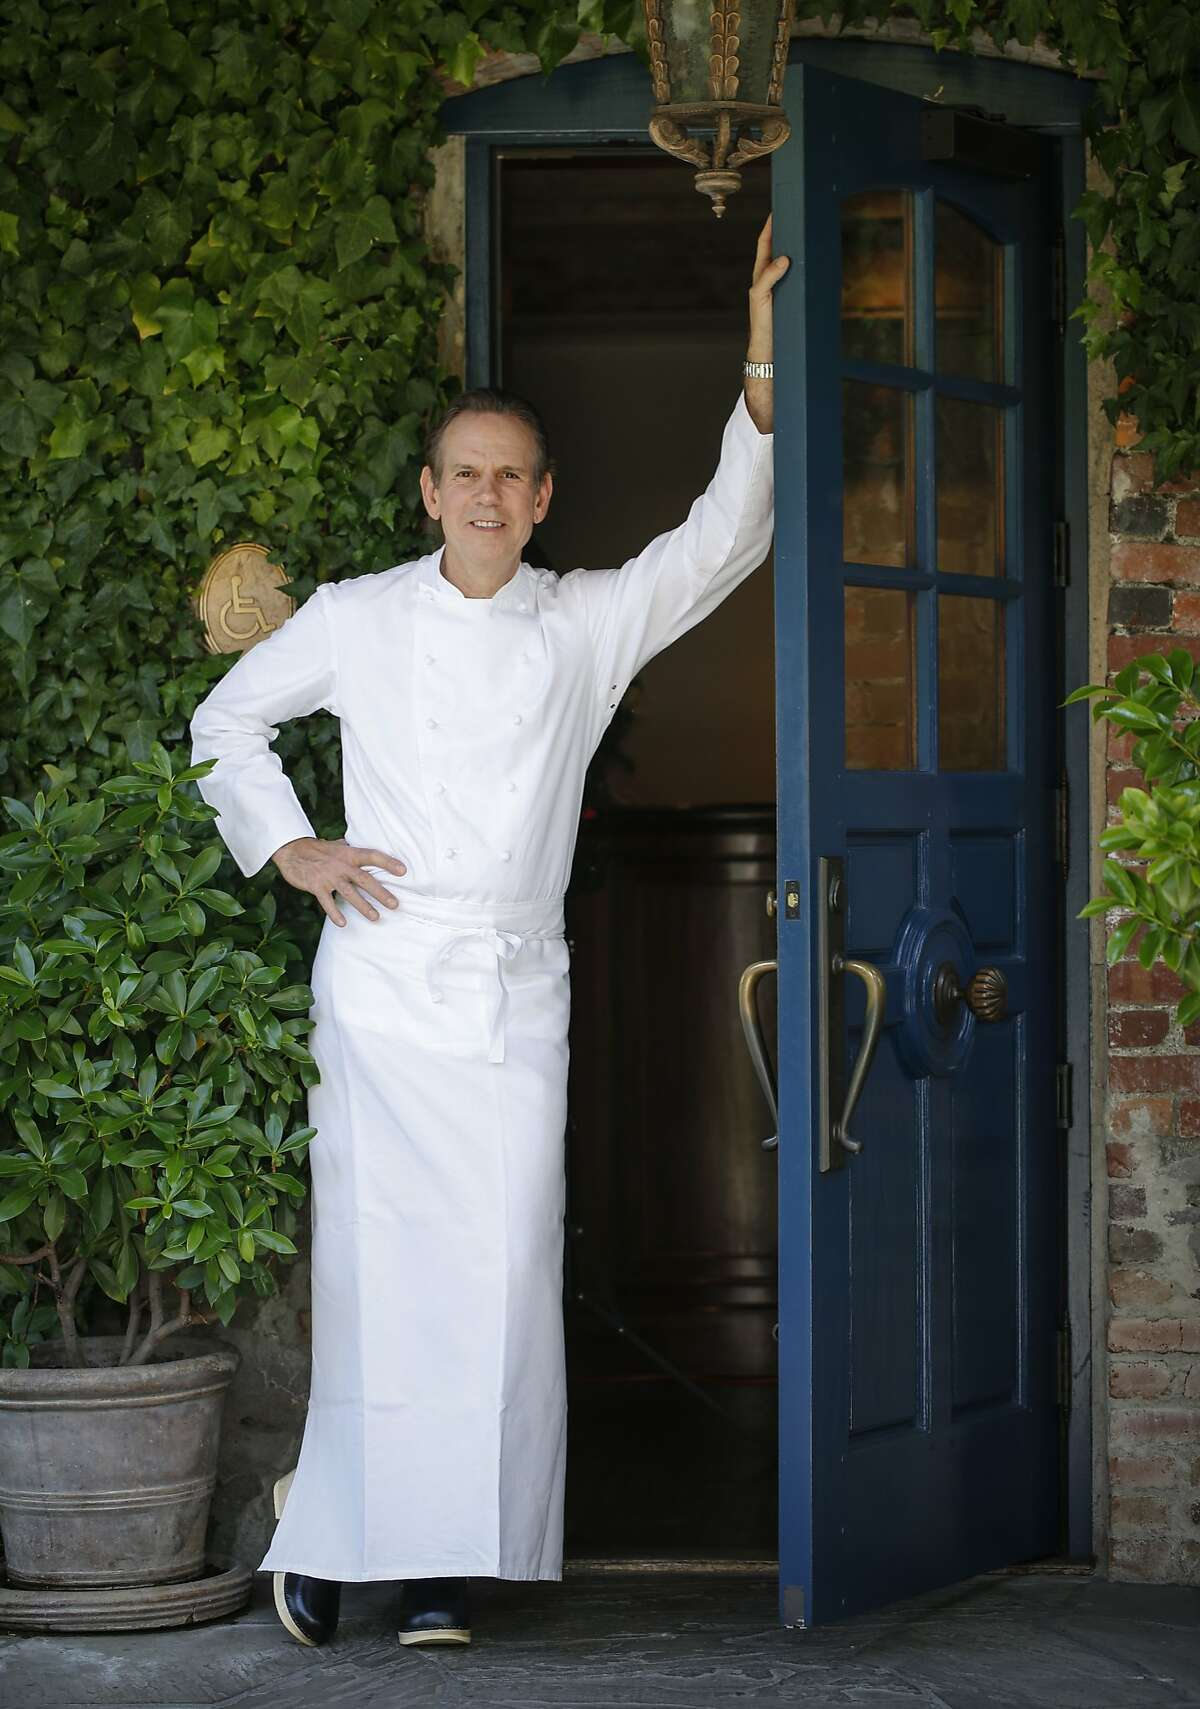 Chef Thomas Keller stands in the doorway of The French Laundry on Wednesday, April 16, 2014 in Yountville, Calif.